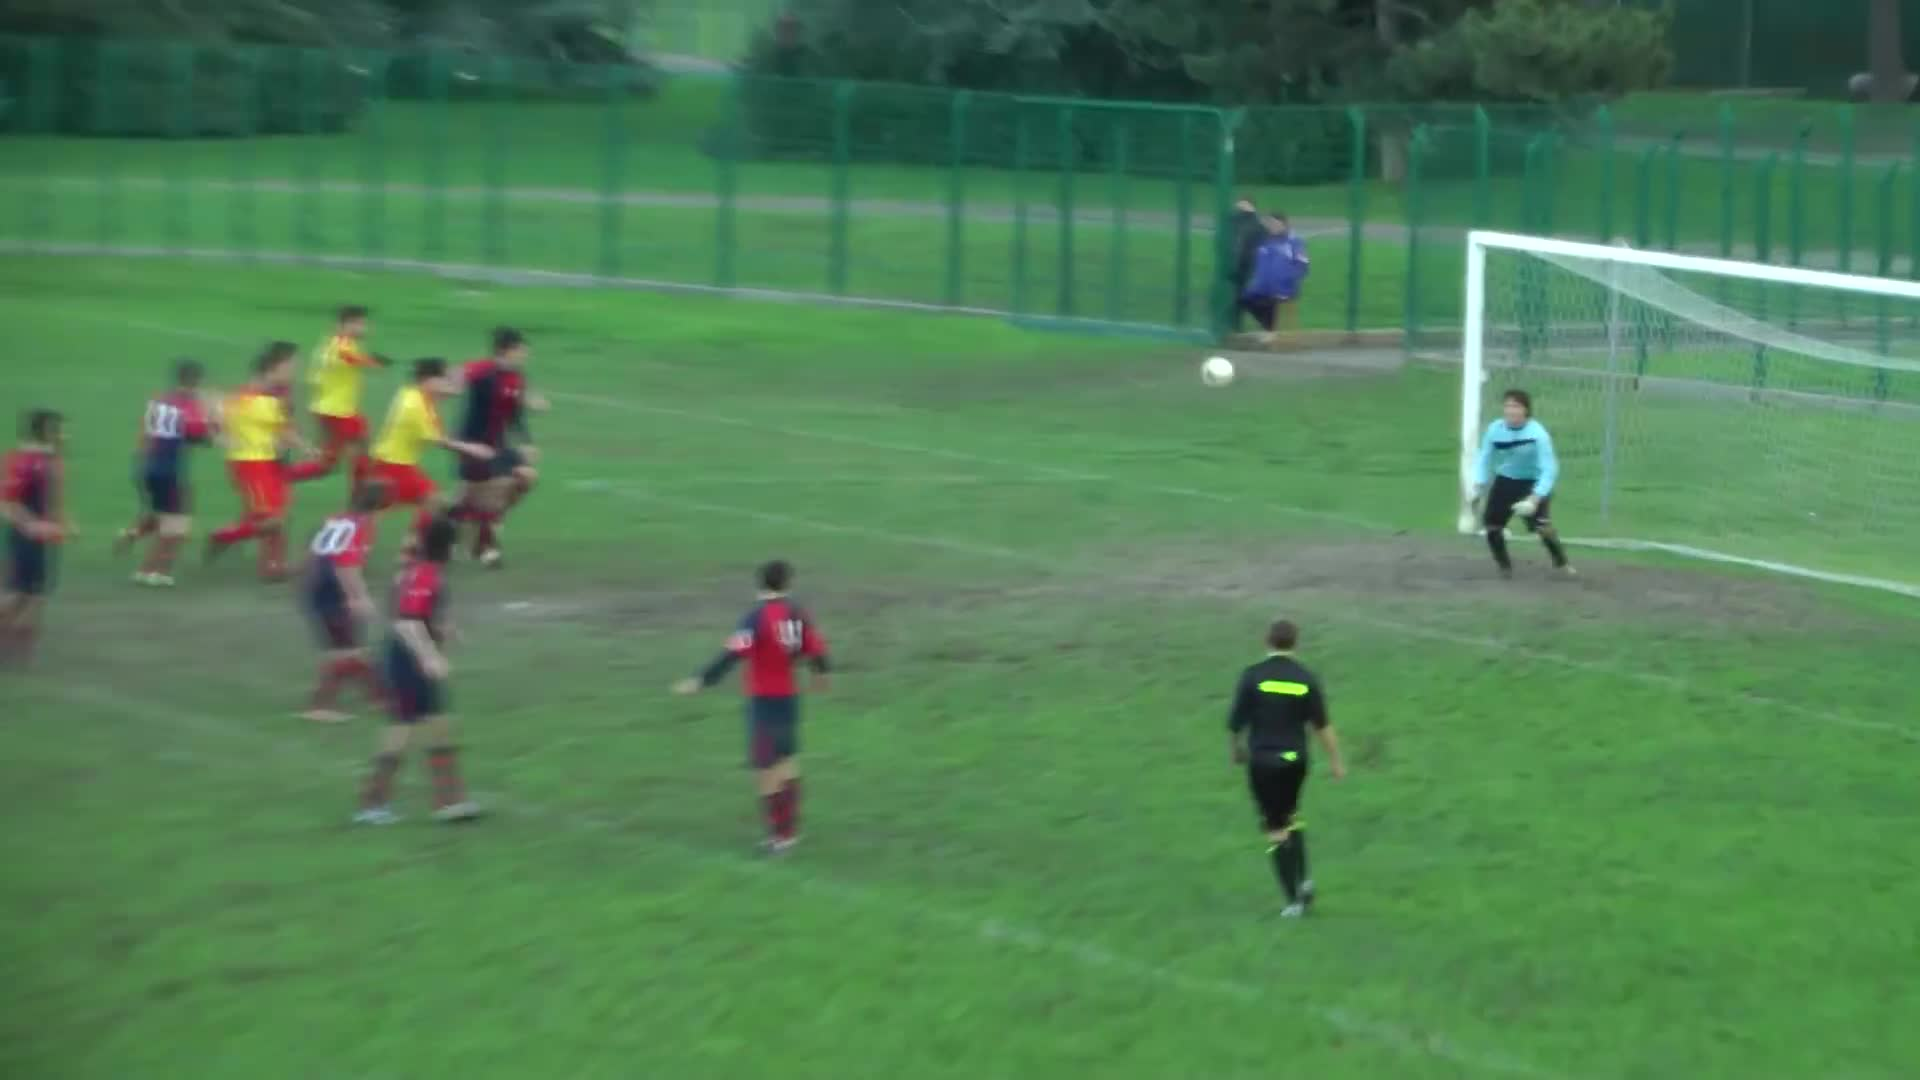 best goal celebrations ever, francosamma, goal, goal celebration, goals, greatest goal celebration ever, ponticelli calcio, riolo terme calcio, sammarchi enrico, sammarchi franco, soccer, sports, goal GIFs